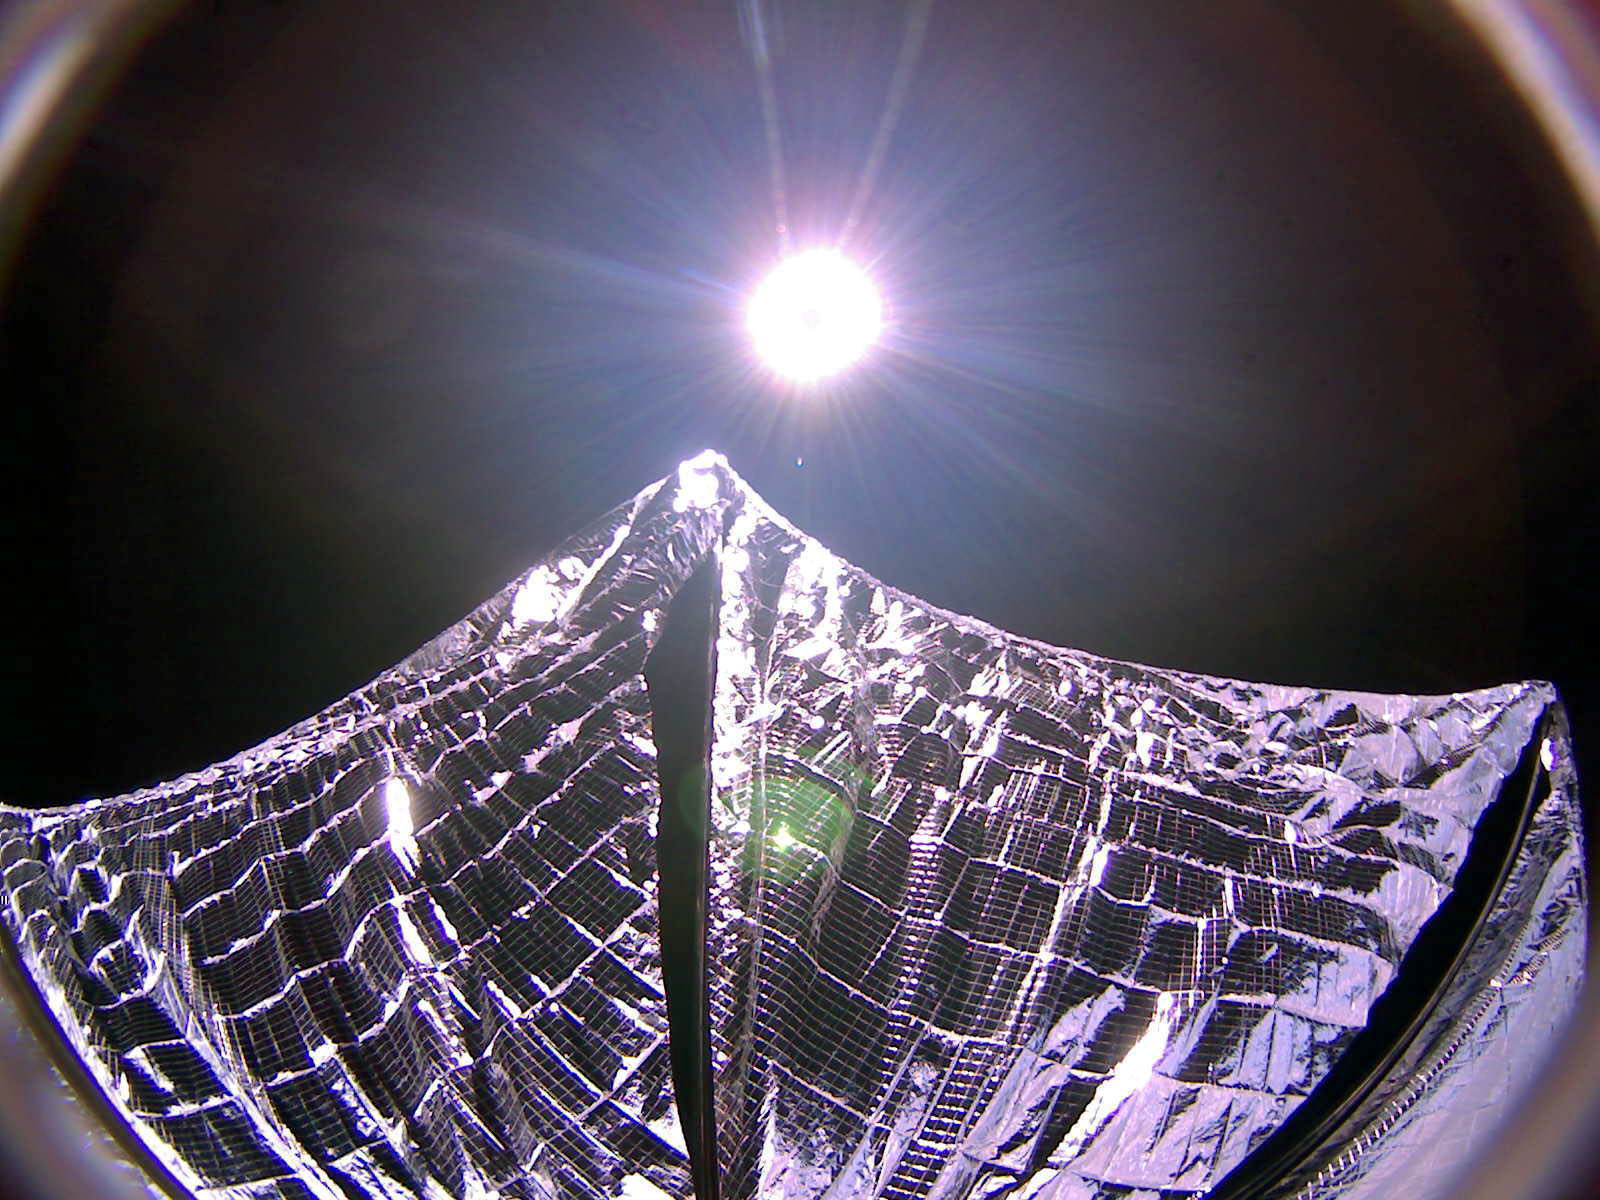 LightSail with solar sails deployed